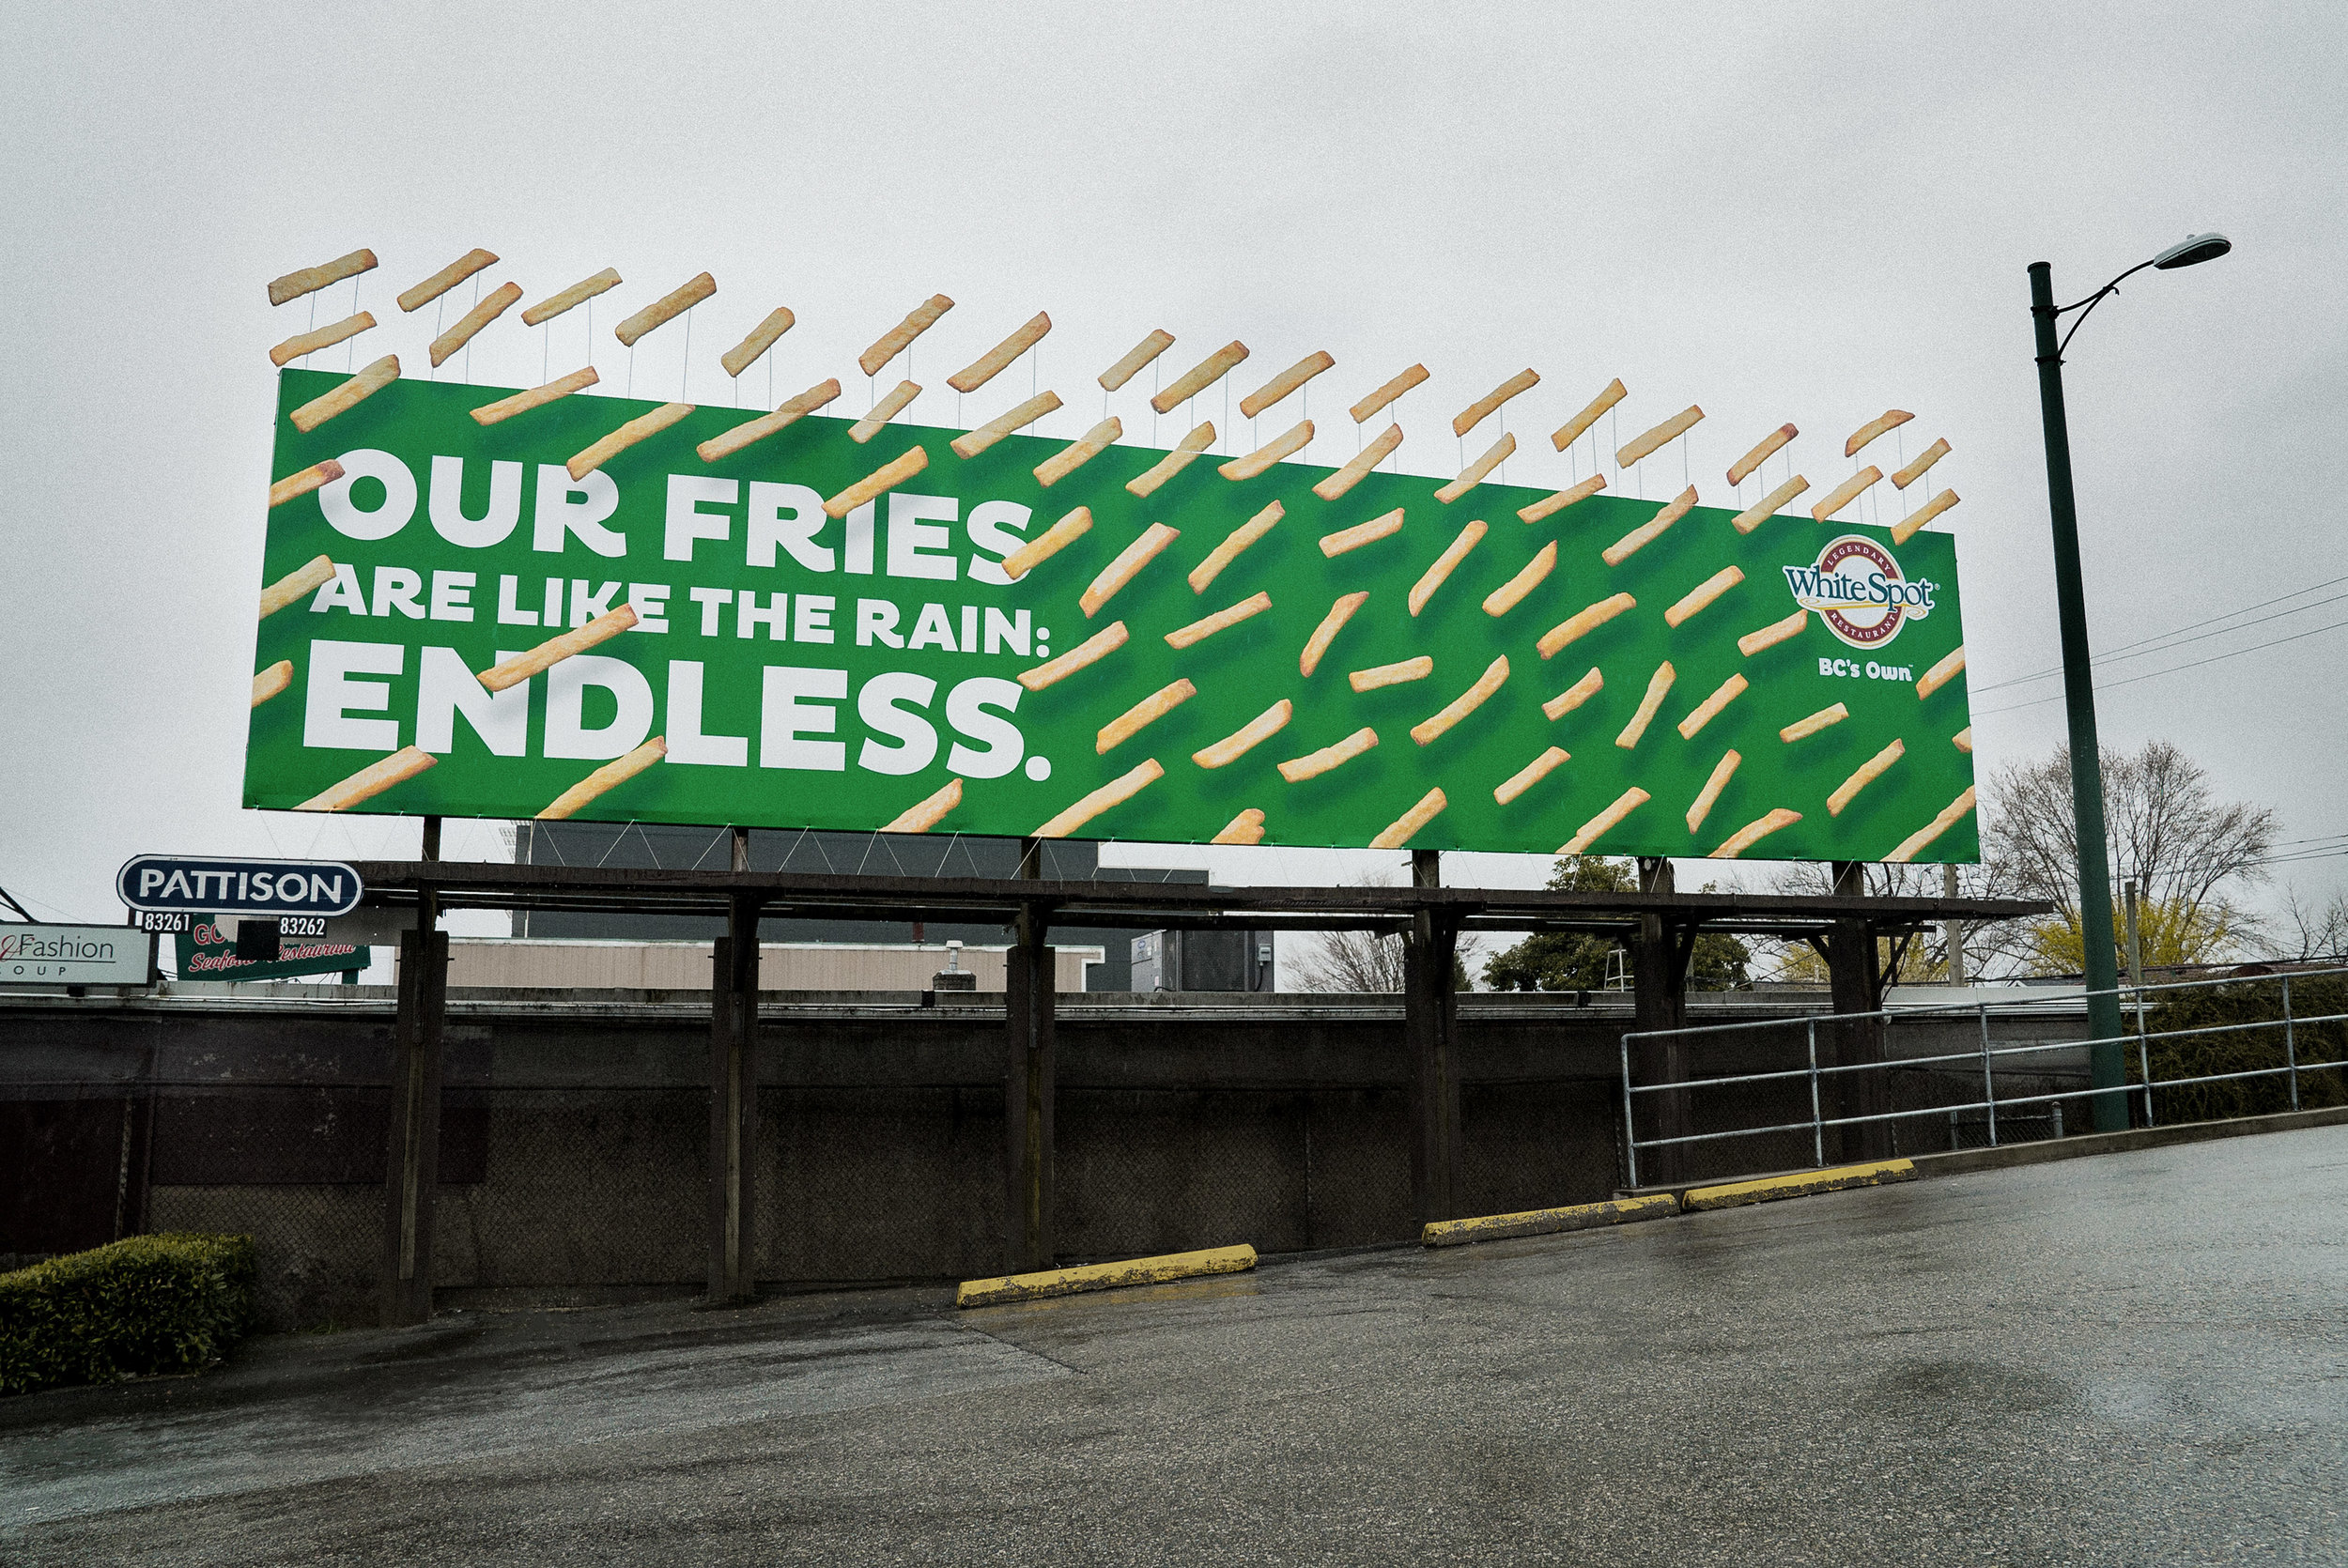 WhiteSpot-EndlessFries-Billboard_DSC0761.jpg